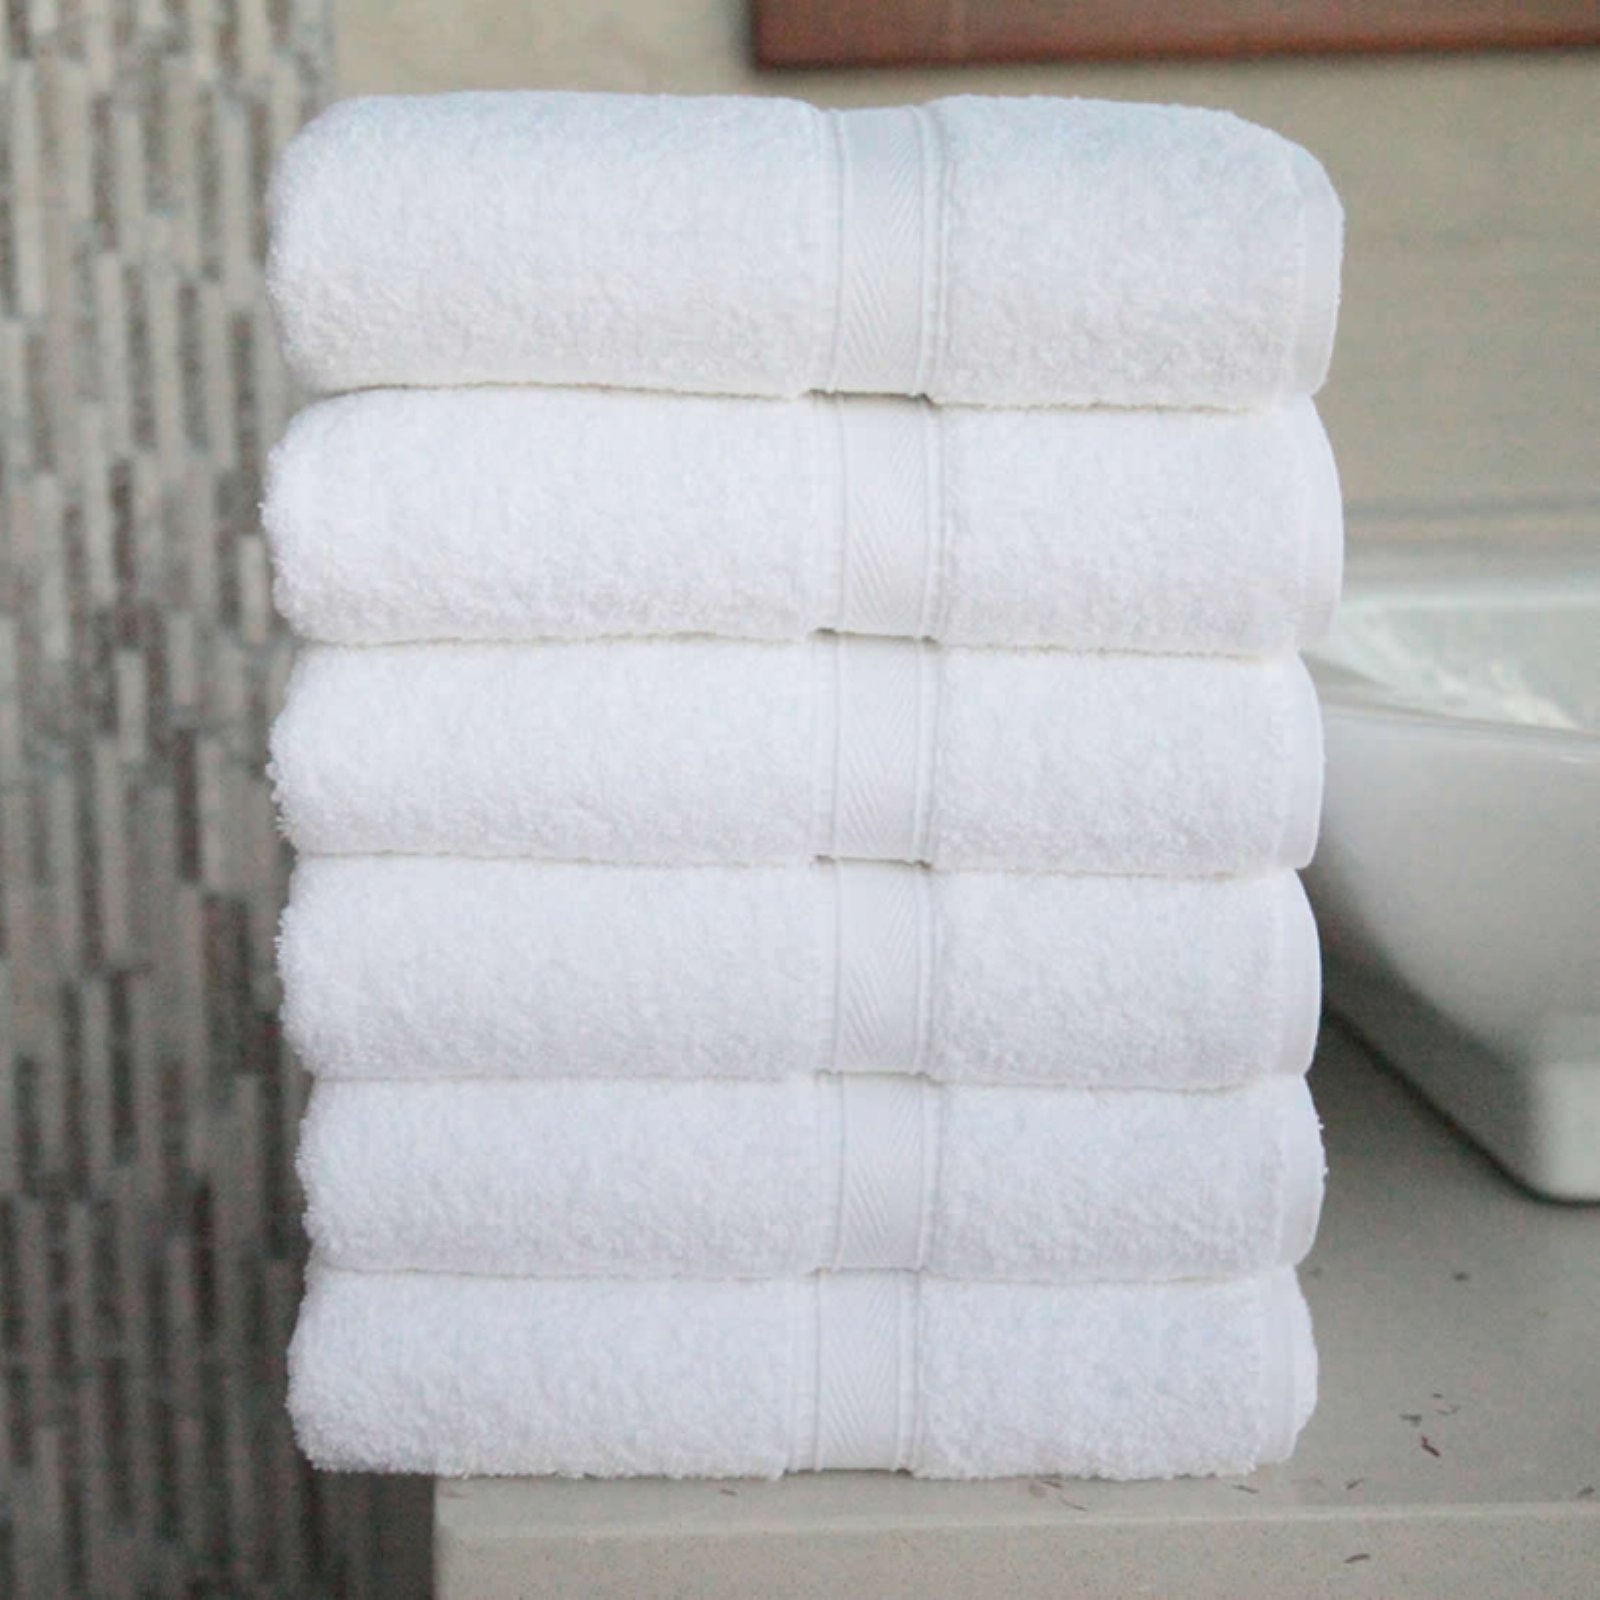 Luxury Hotel & Spa 100% Turkish Cotton Hand Towels - Set of 6